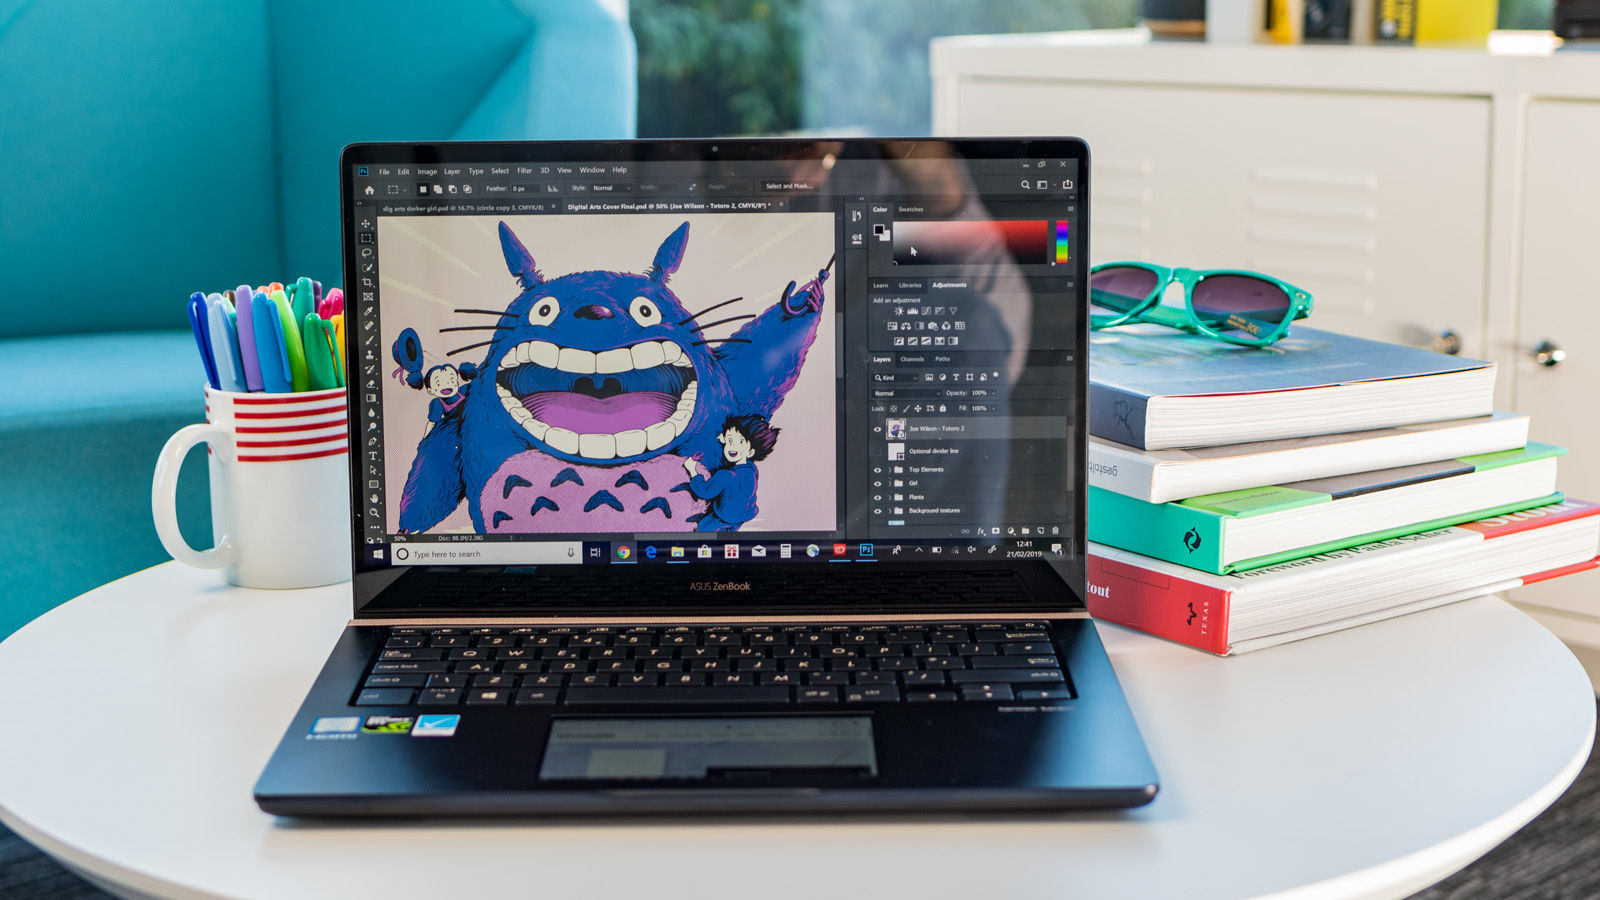 Asus ZenBook Pro 14 review: the designer-focussed laptop with a